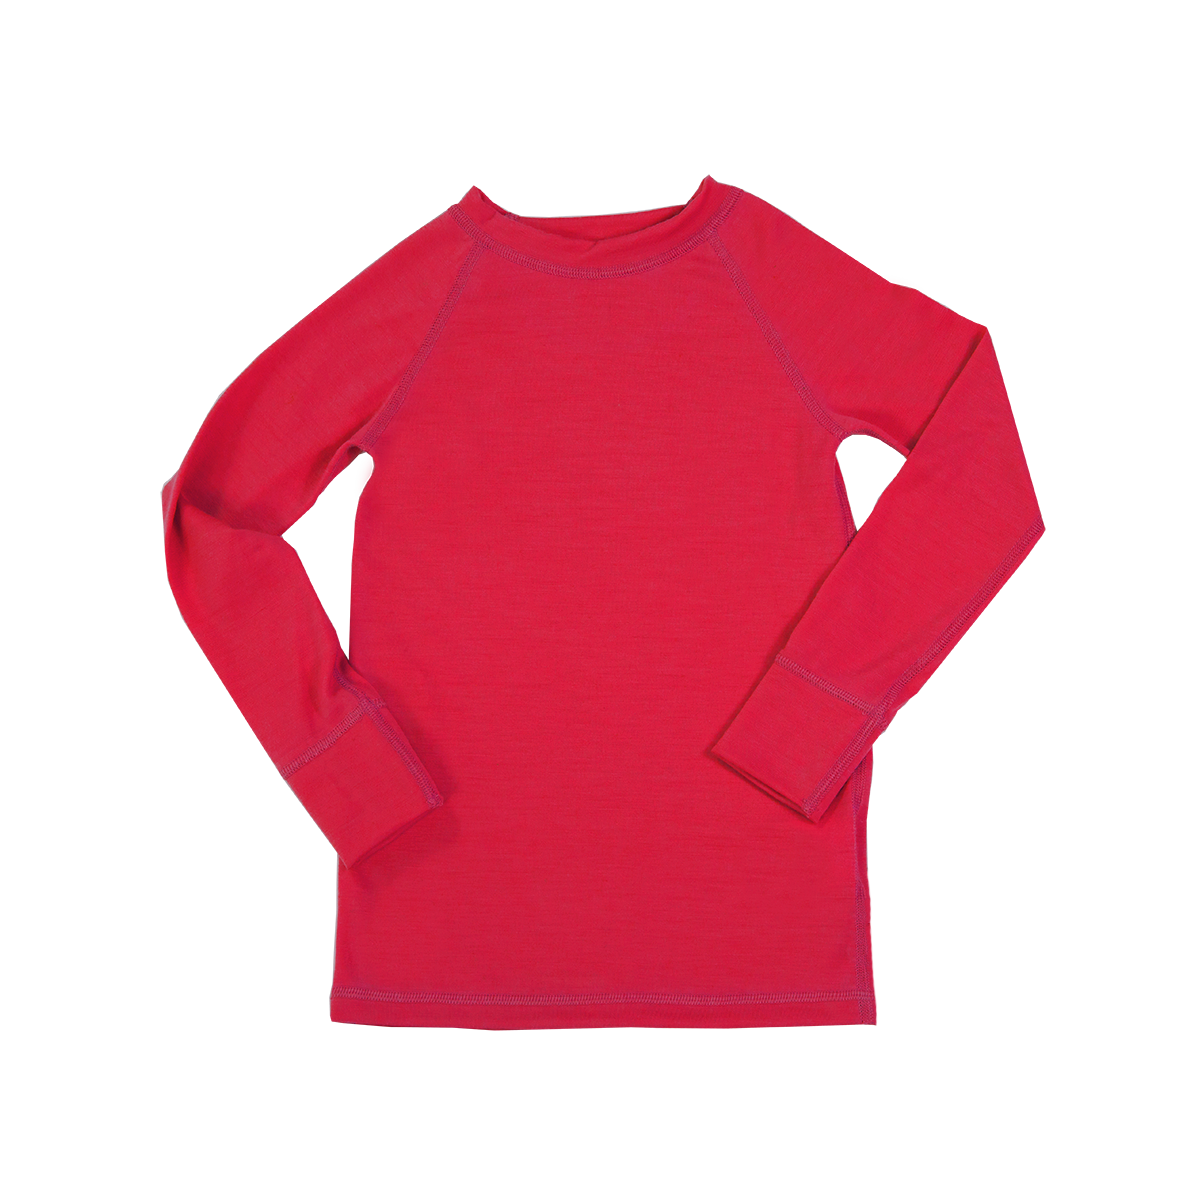 Iksplor Kids' Merino Wool Thermal Base Layer Top - Pink